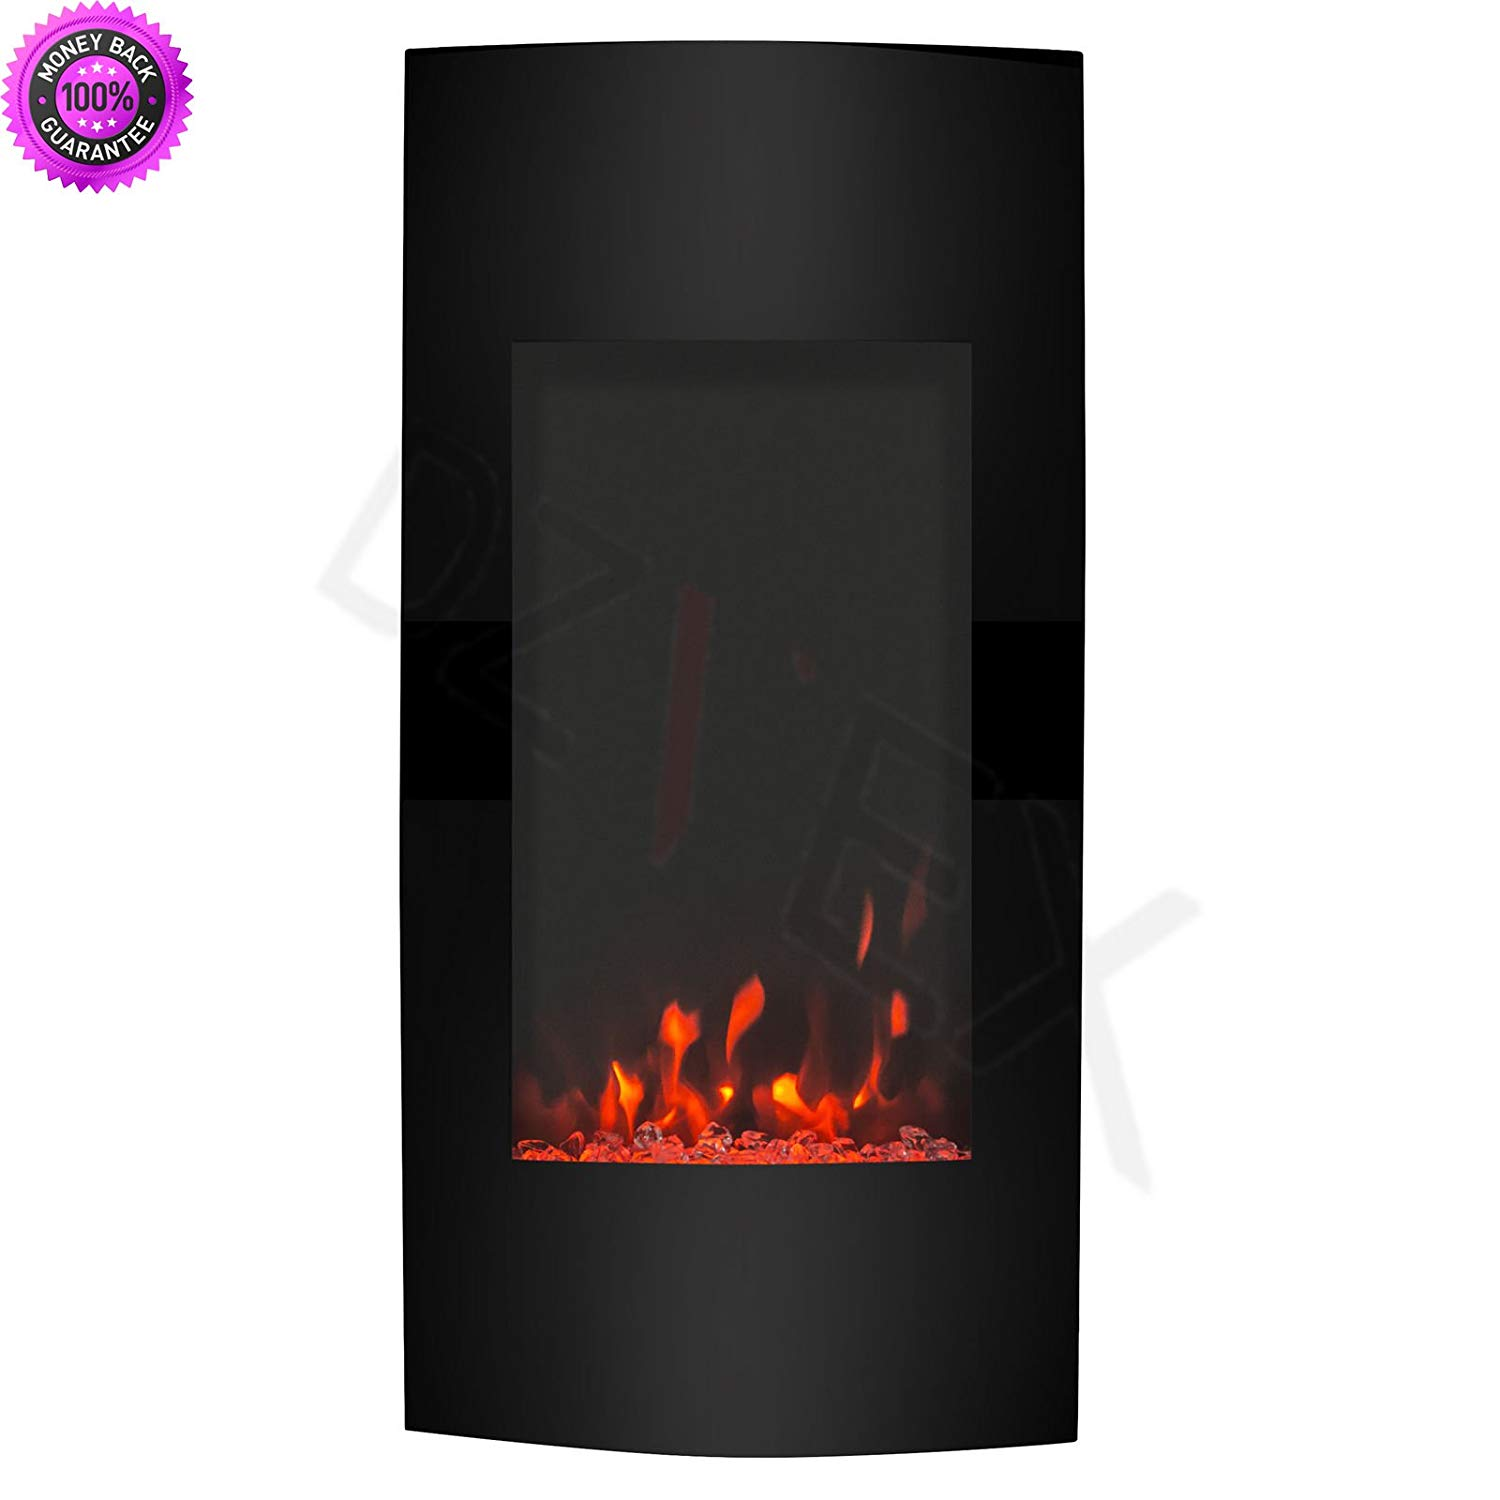 """DzVeX_1500W Adjustable Vertical 38"""" Wall Mount Electric Fireplace Heater Multi Color And wood burning fireplaces electric fireplaces clearance home depot home depot fireplaces 80% off gas fireplaces"""